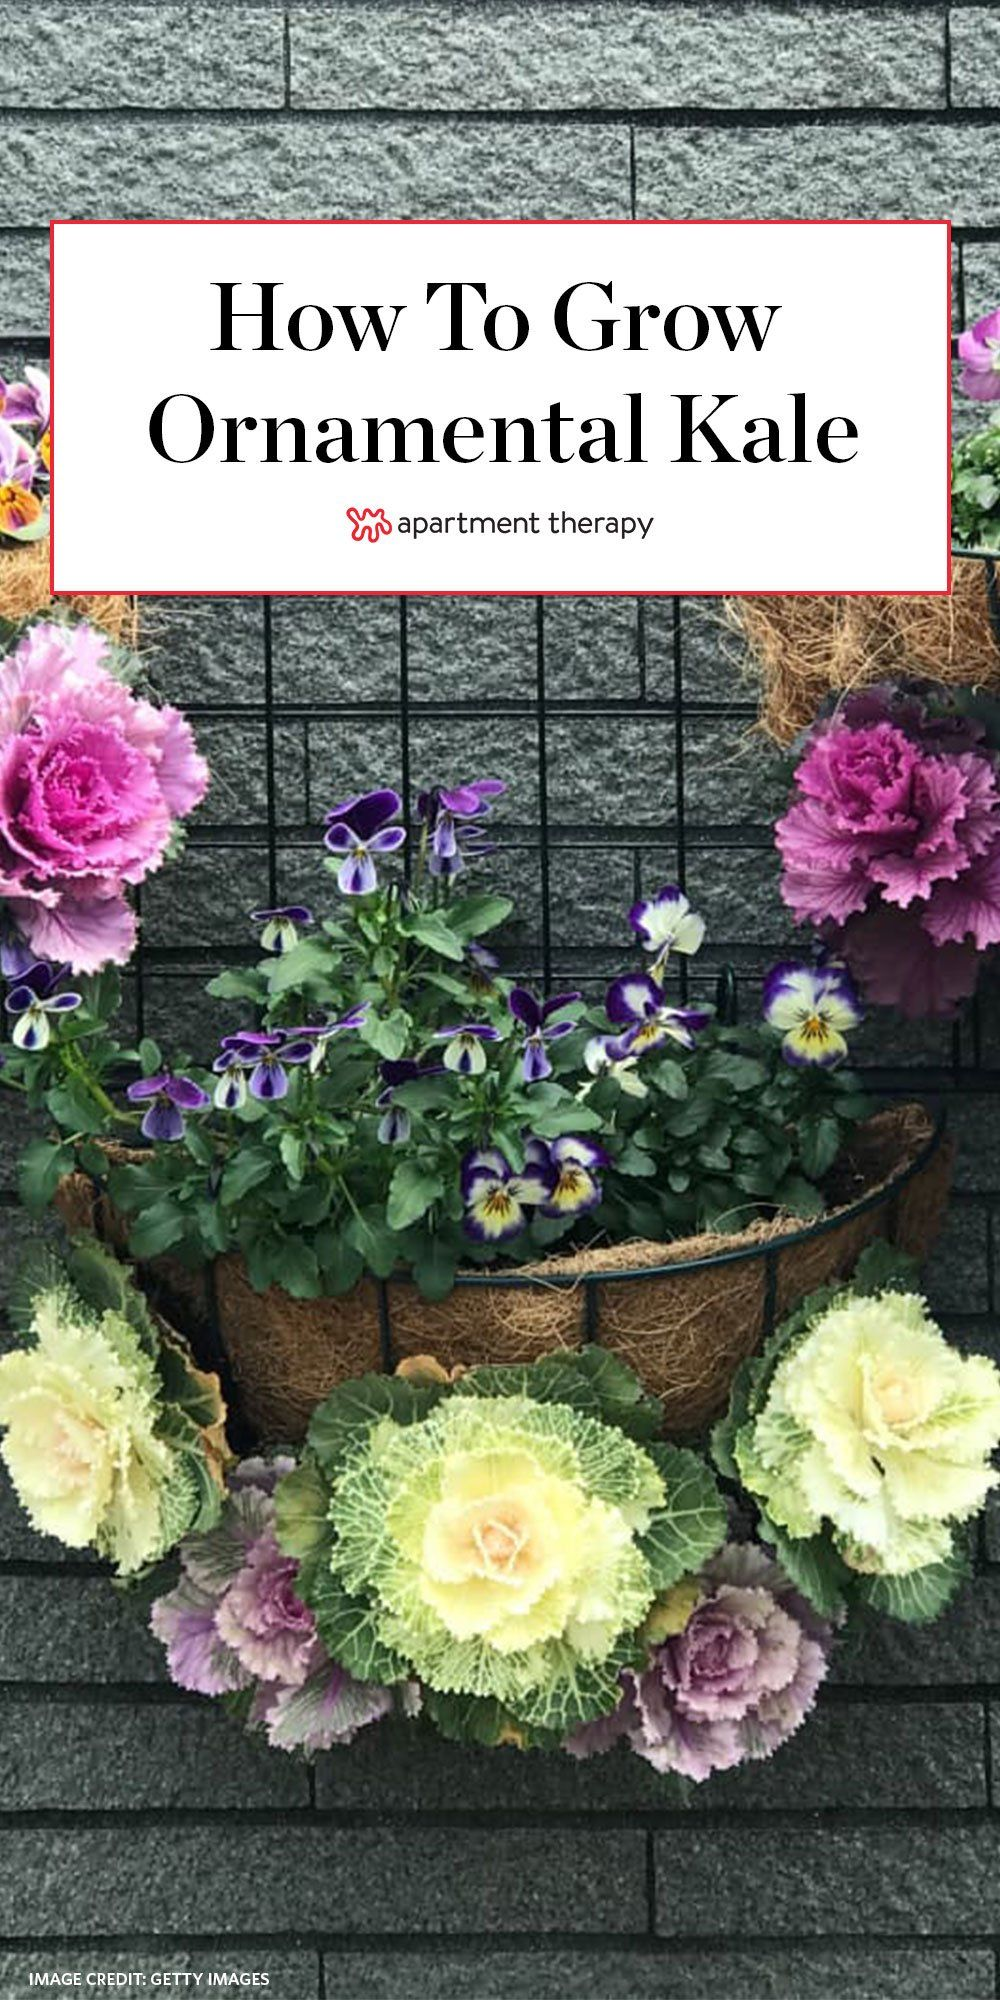 How To Grow And Care For Ornamental Kale And Cabbage Ornamental Kale Ornamental Cabbage Flowering Kale